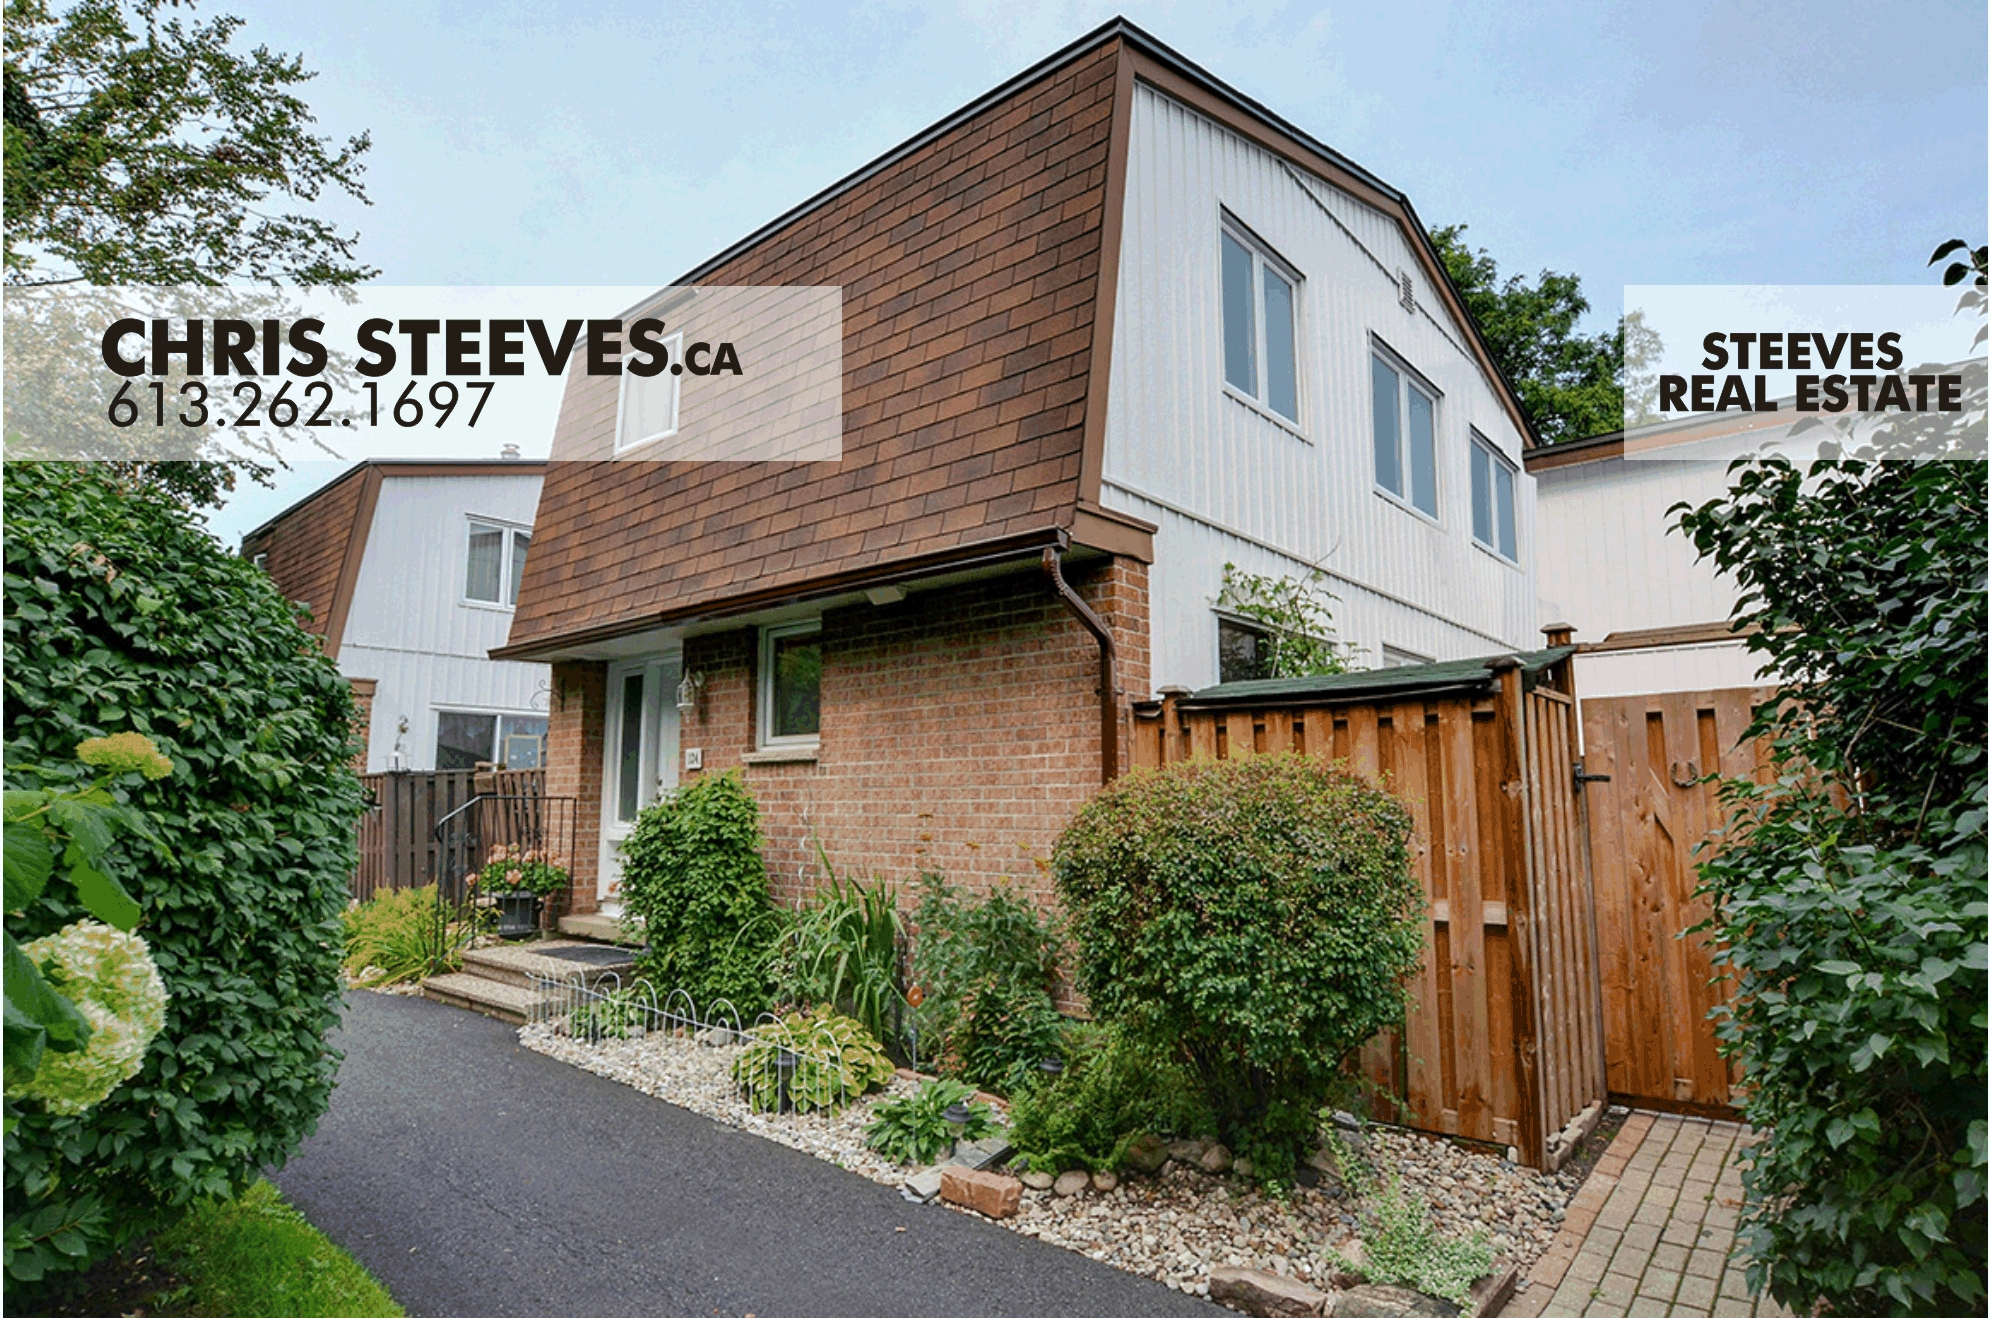 837 EASTVALE DR #134 – BEACON HILL